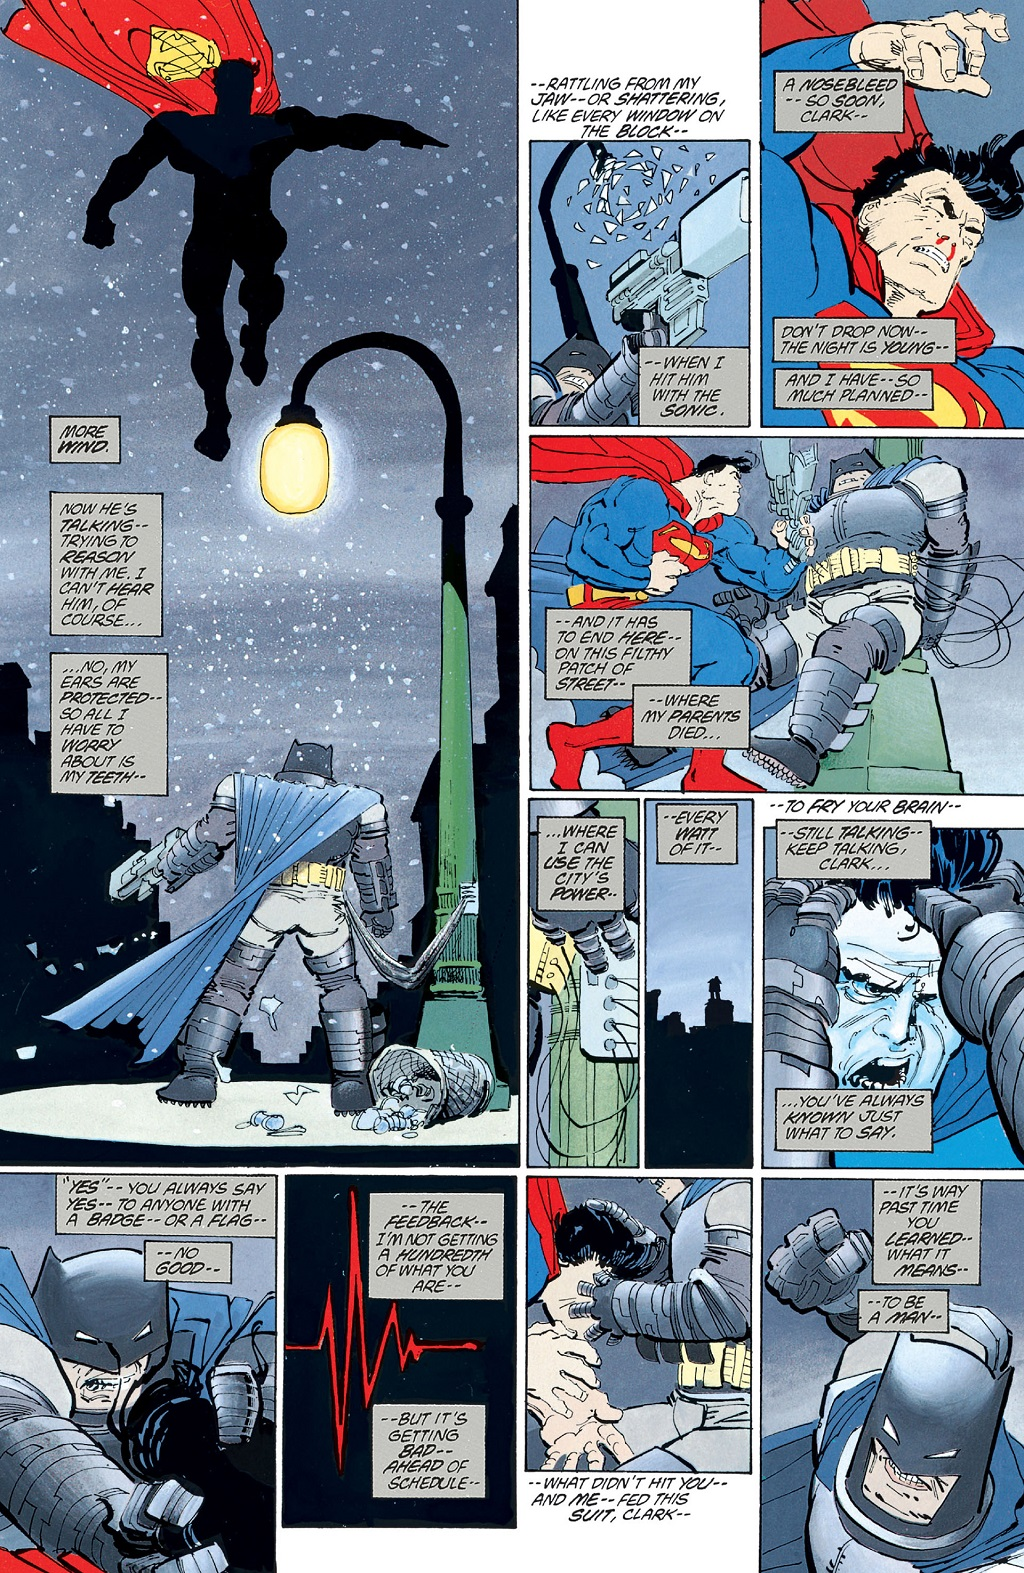 I didn't read Dark Knight Returns for a long time, because I thought the whole Batman and Superman fighting thing was dumb. Now that I've read it, I admit it's pretty good, though still not my favorite.